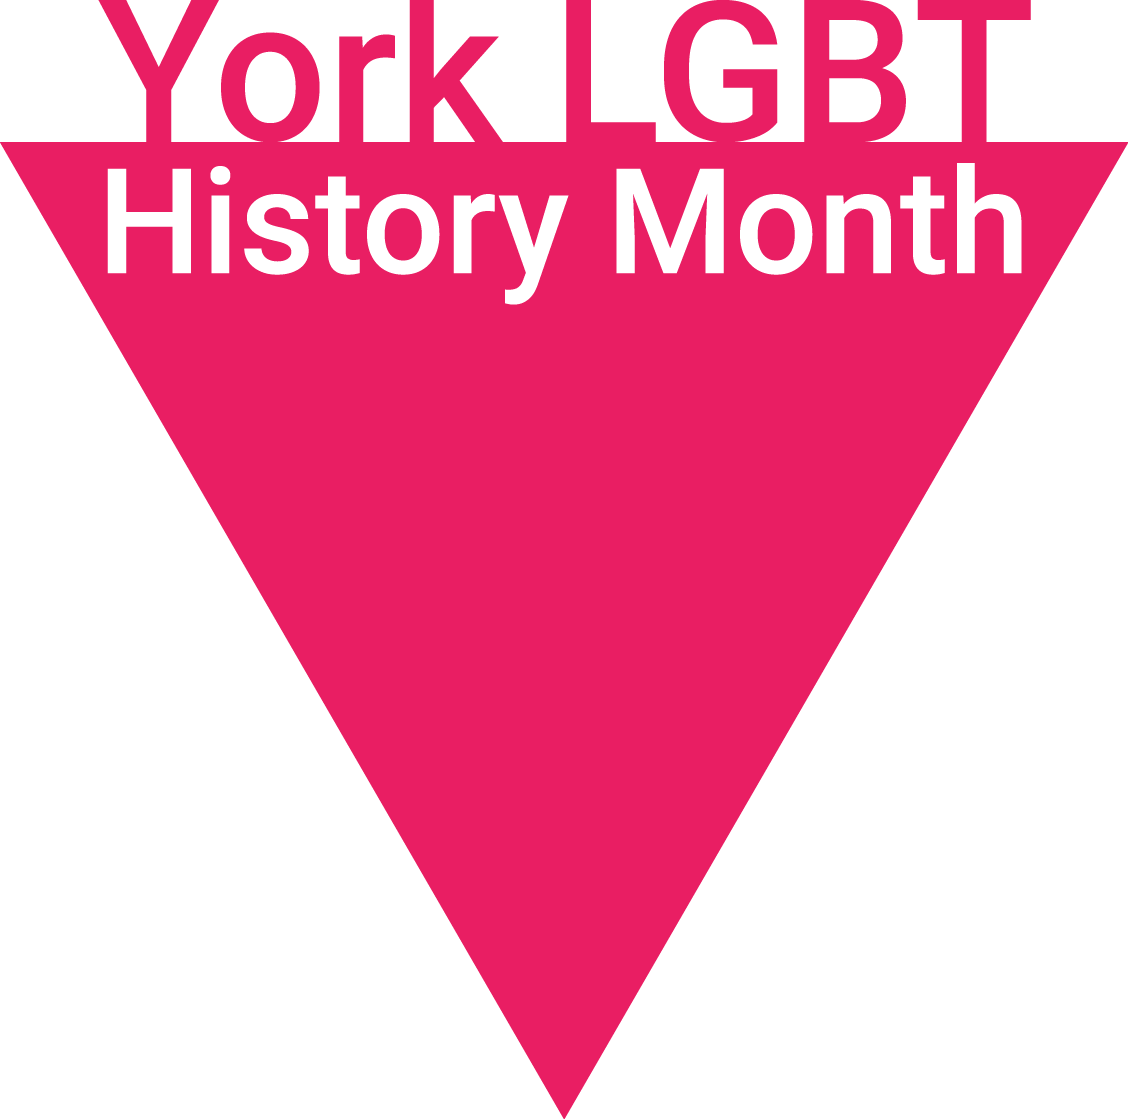 Bringing together organisations across York for a cohesive, collaborative, city-wide LGBT History Month campaign.